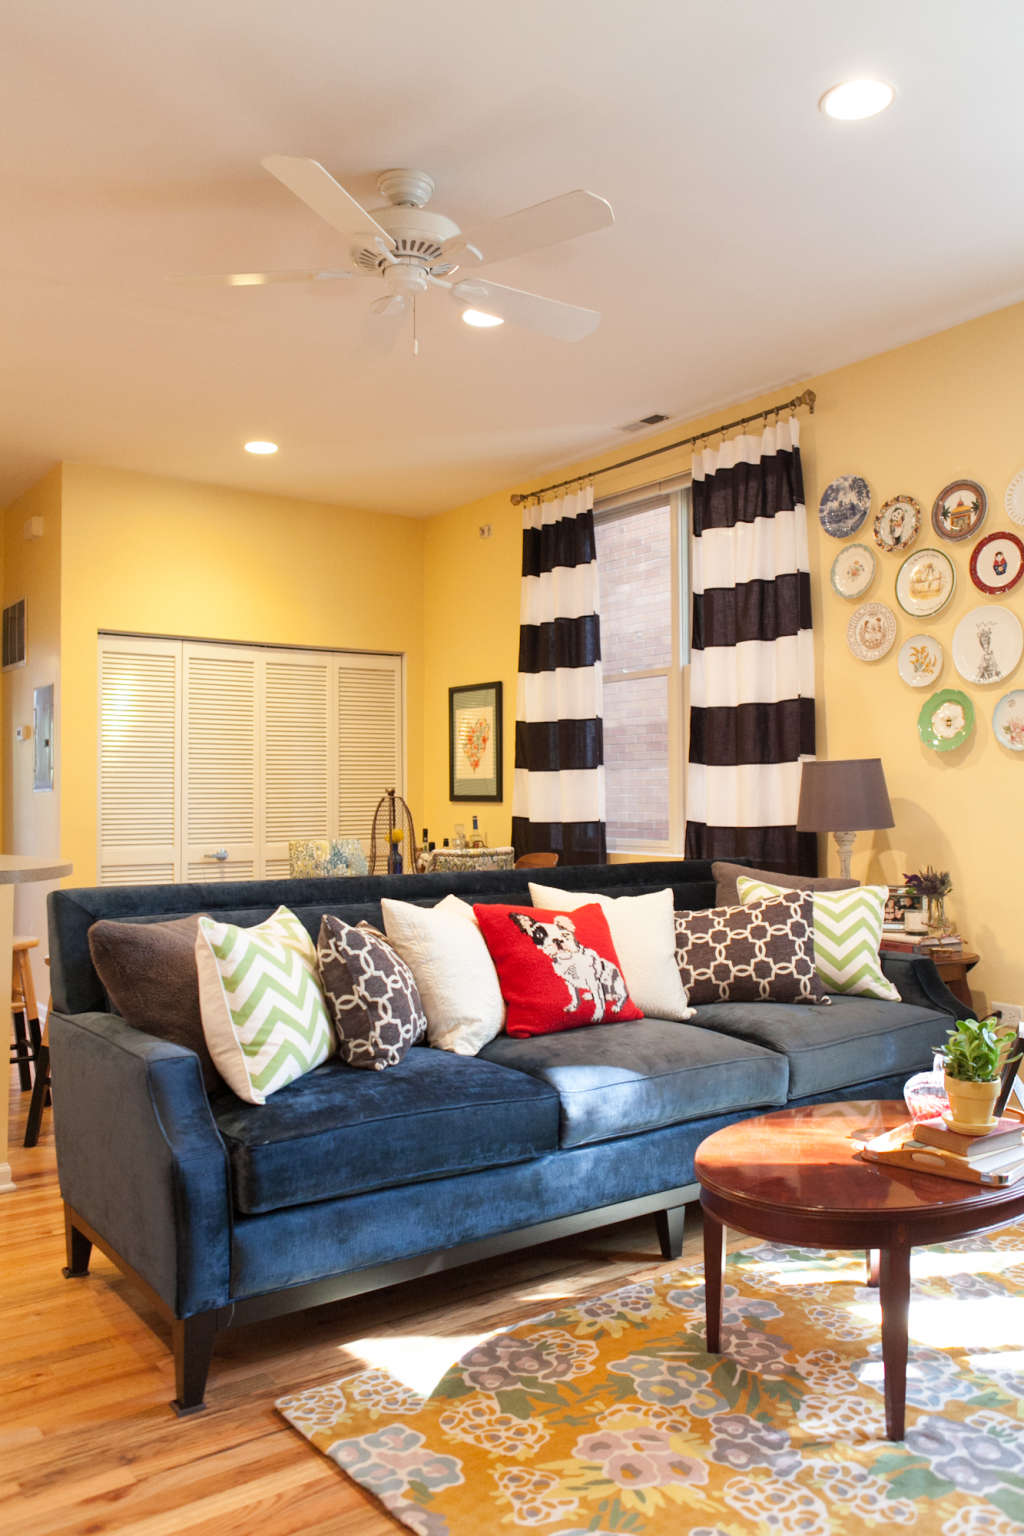 House Tour: A Compact, Colorful Chicago Rental